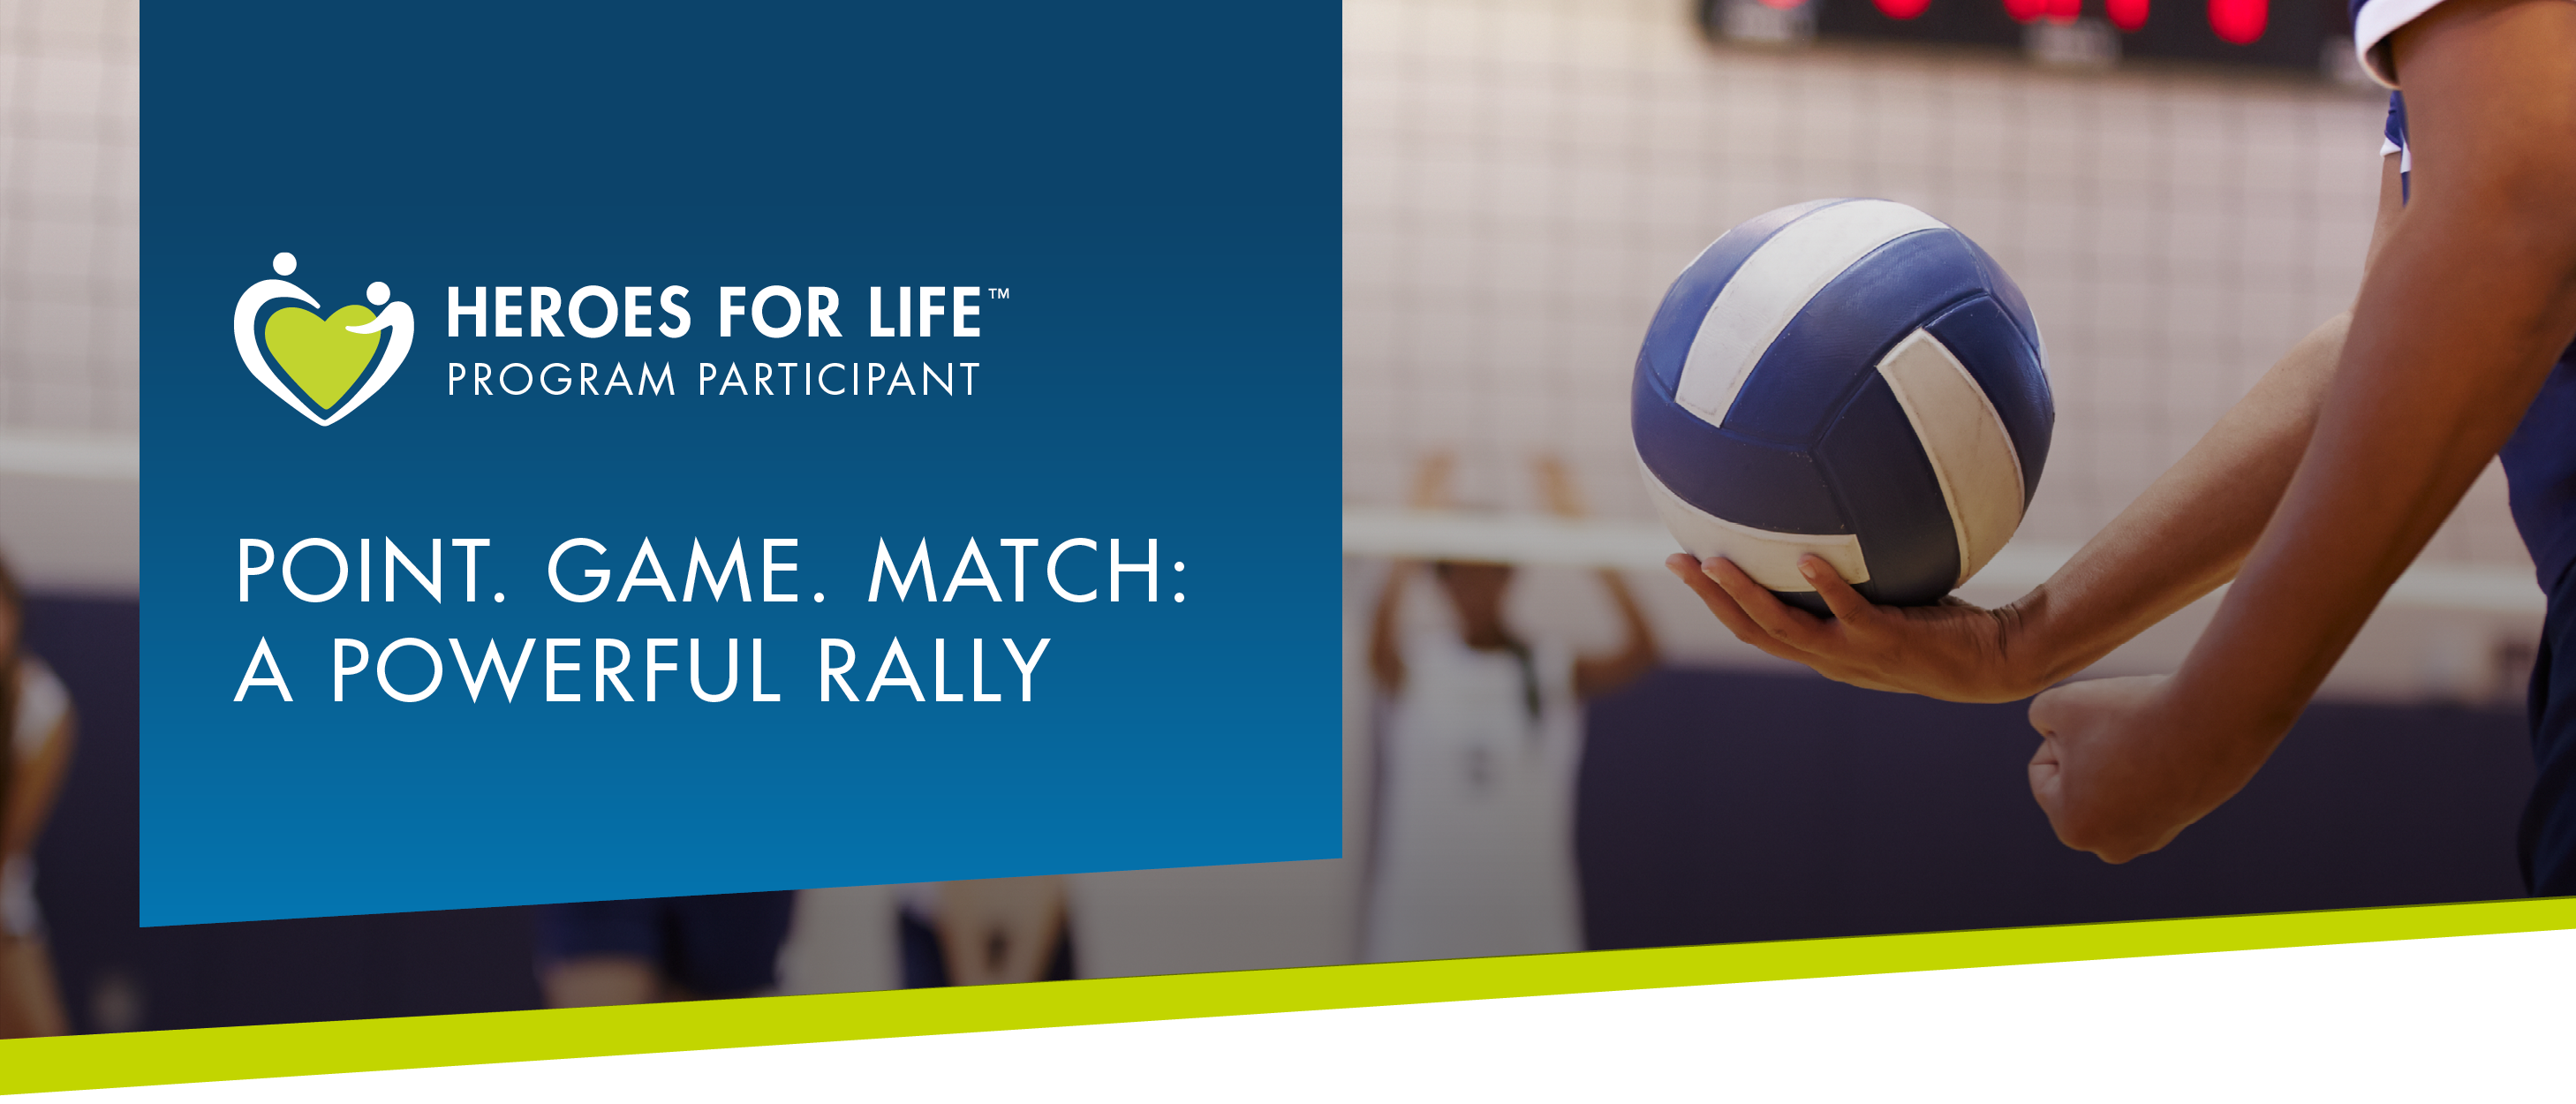 POINT. GAME. MATCH: A POWERFUL RALLY